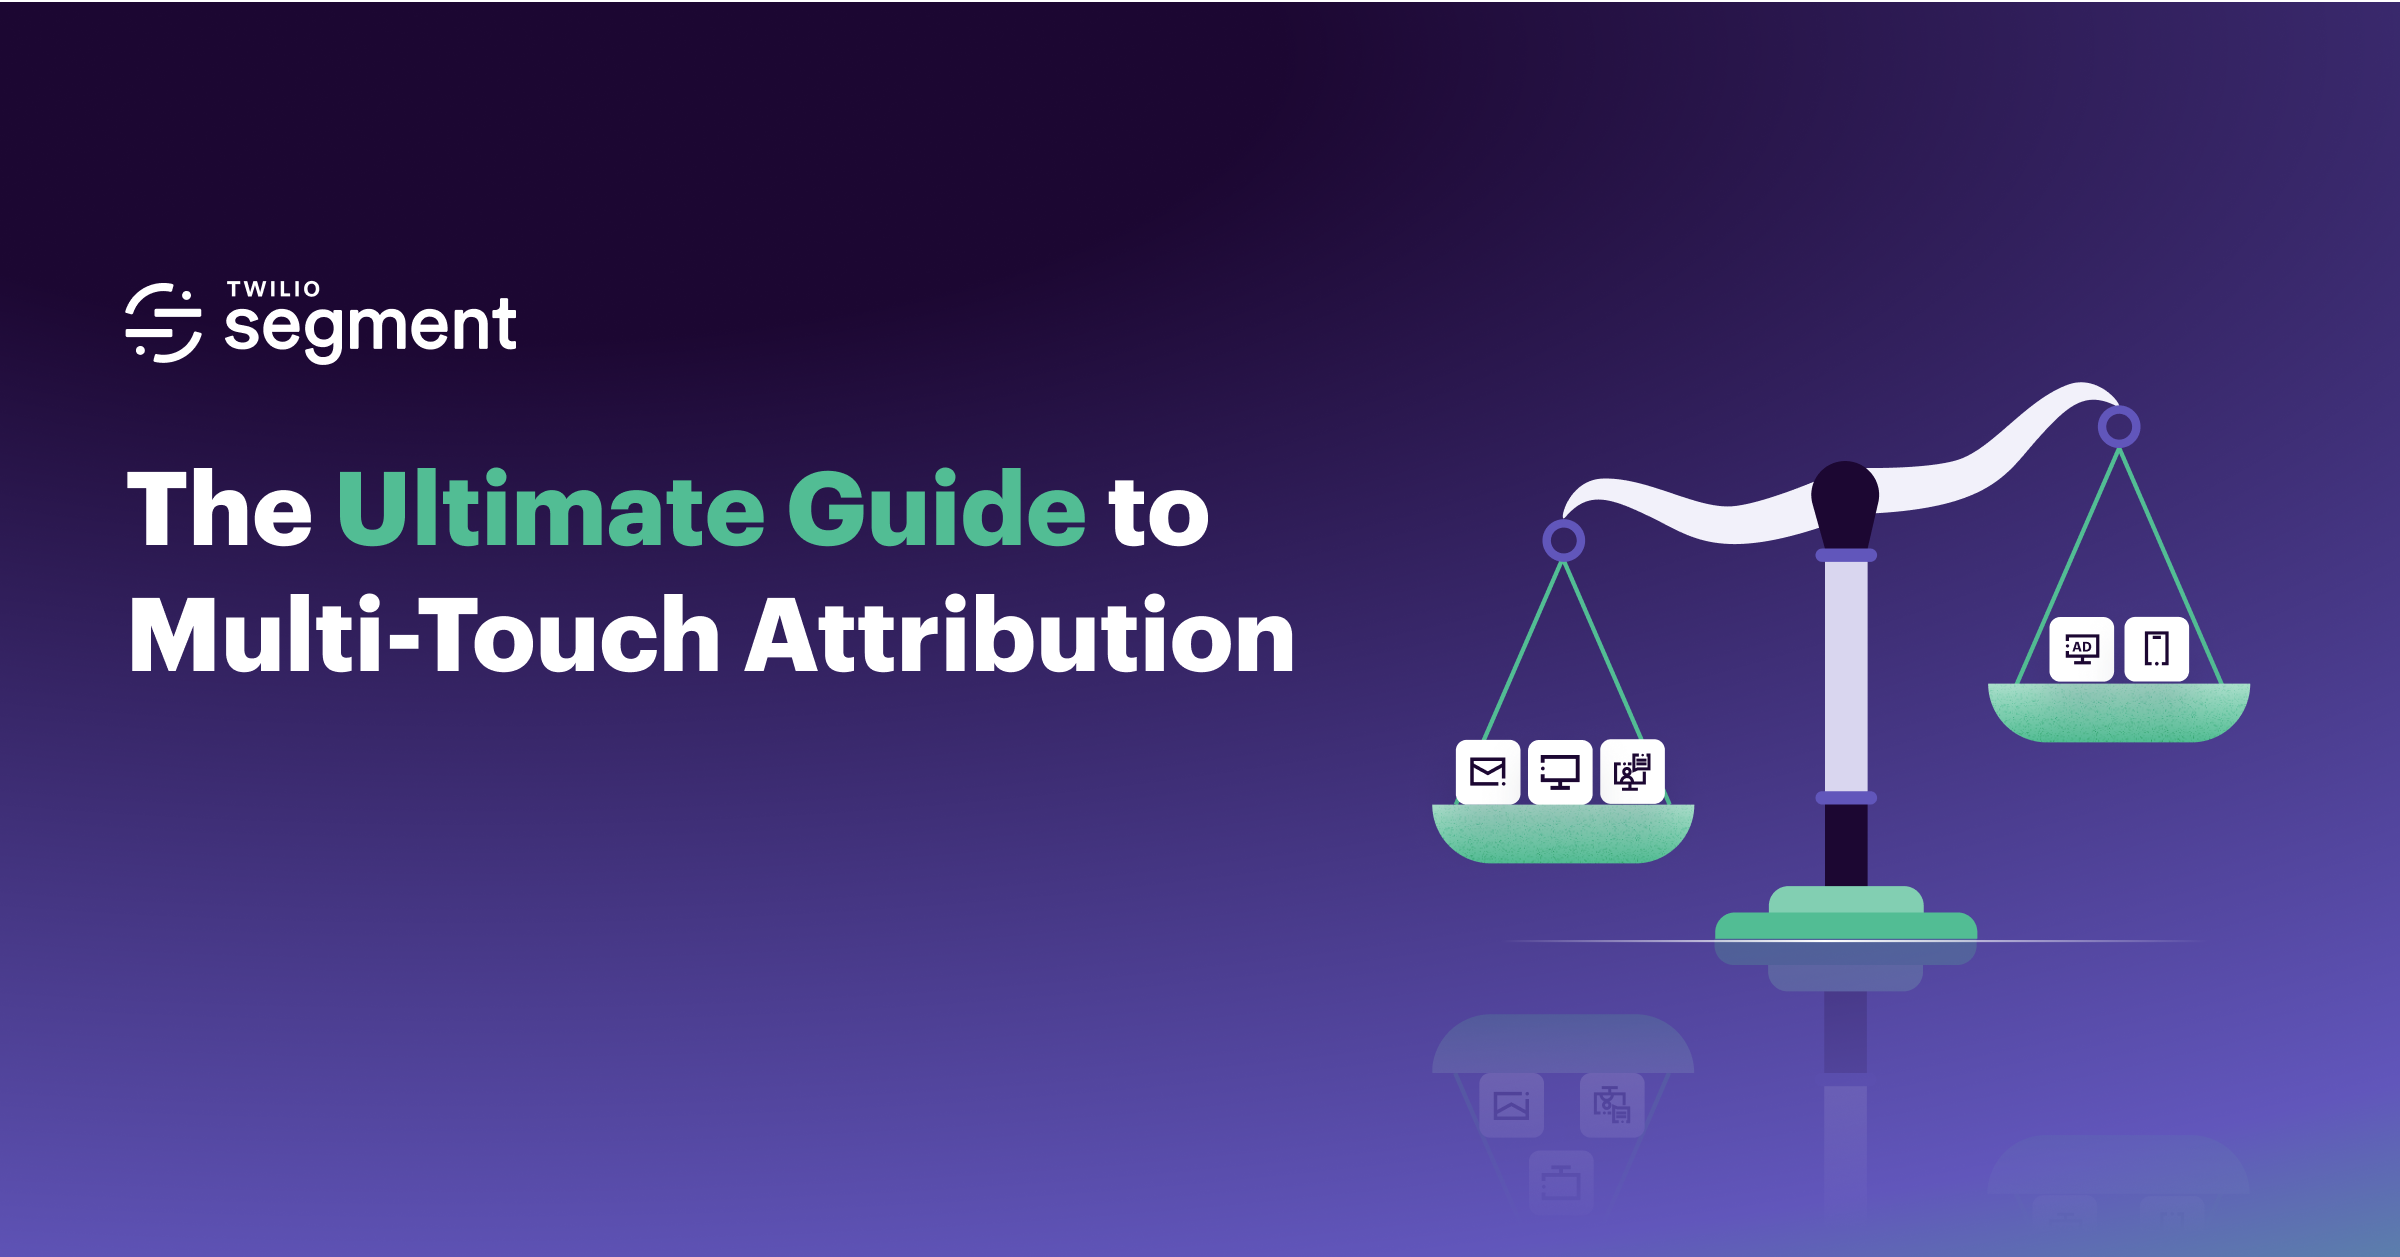 The Ultimate Guide to Multi-Touch Attribution